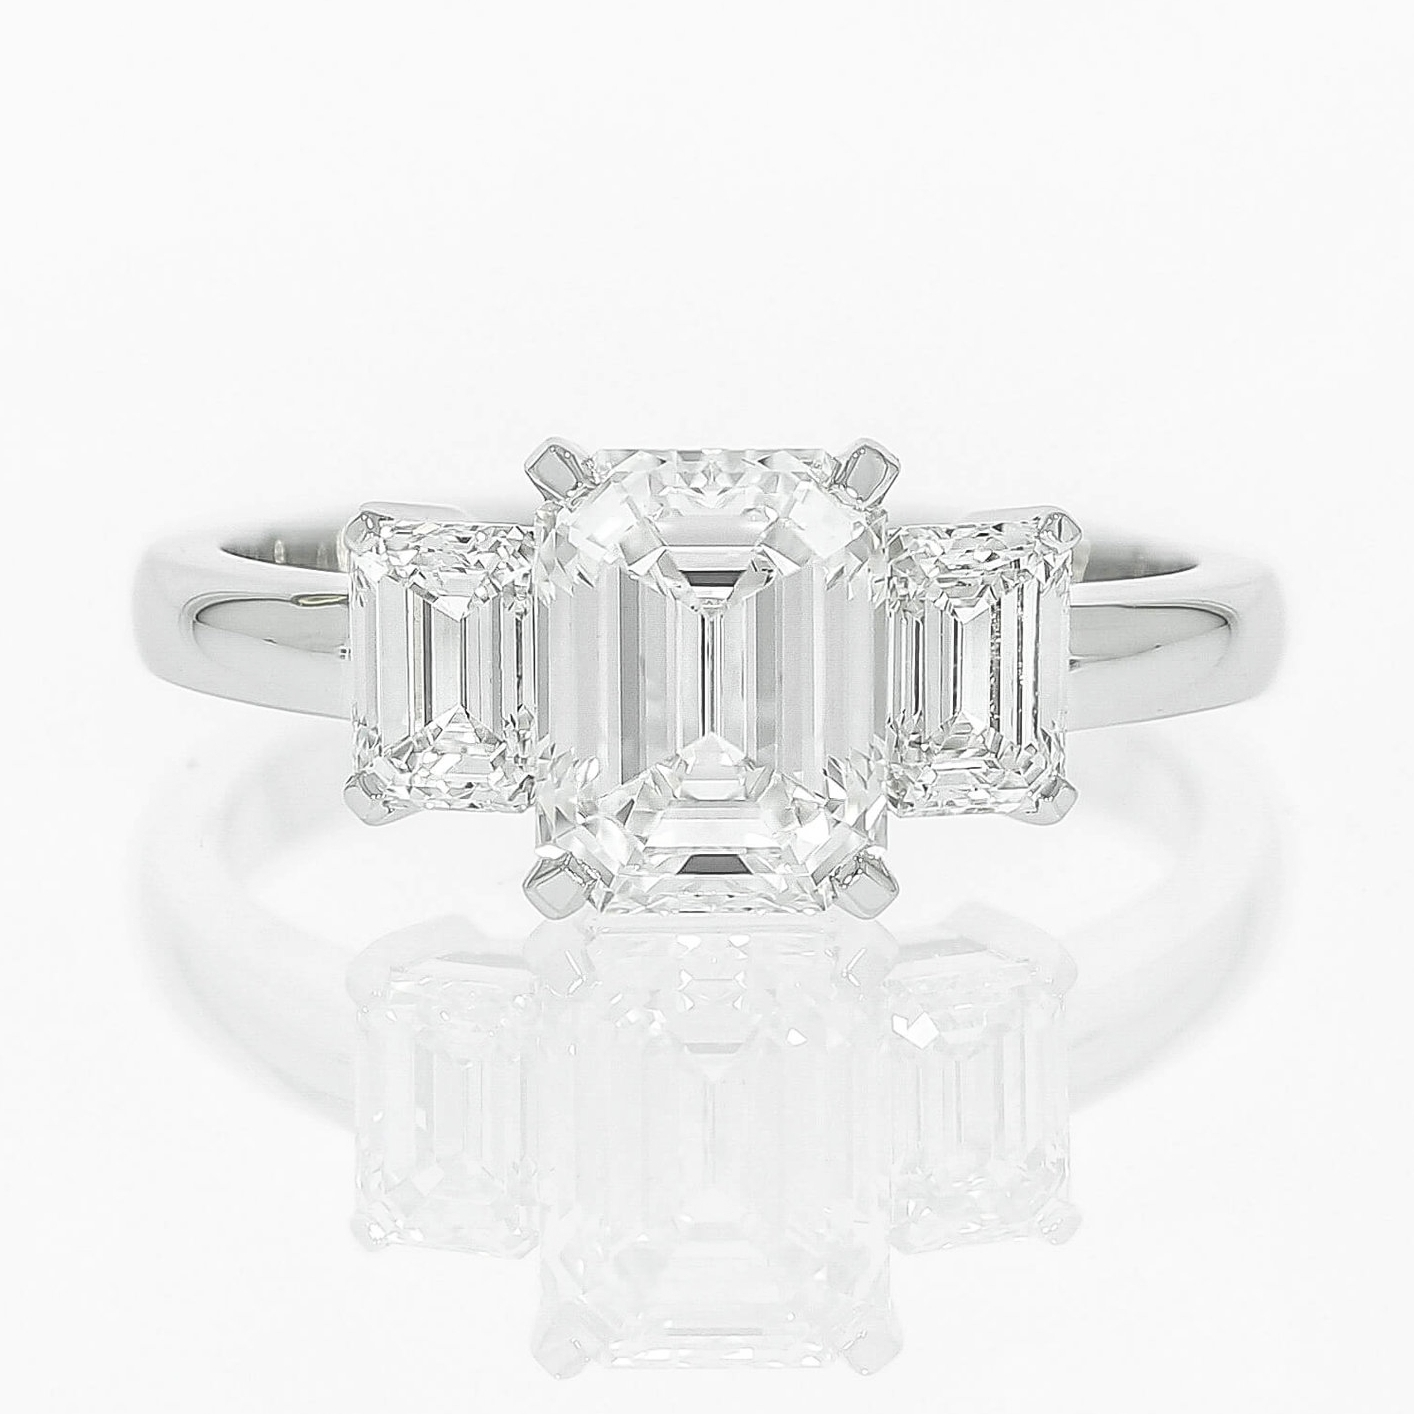 This emerald cut diamond trilogy engagement ring is crisp & modern, by Queensmith